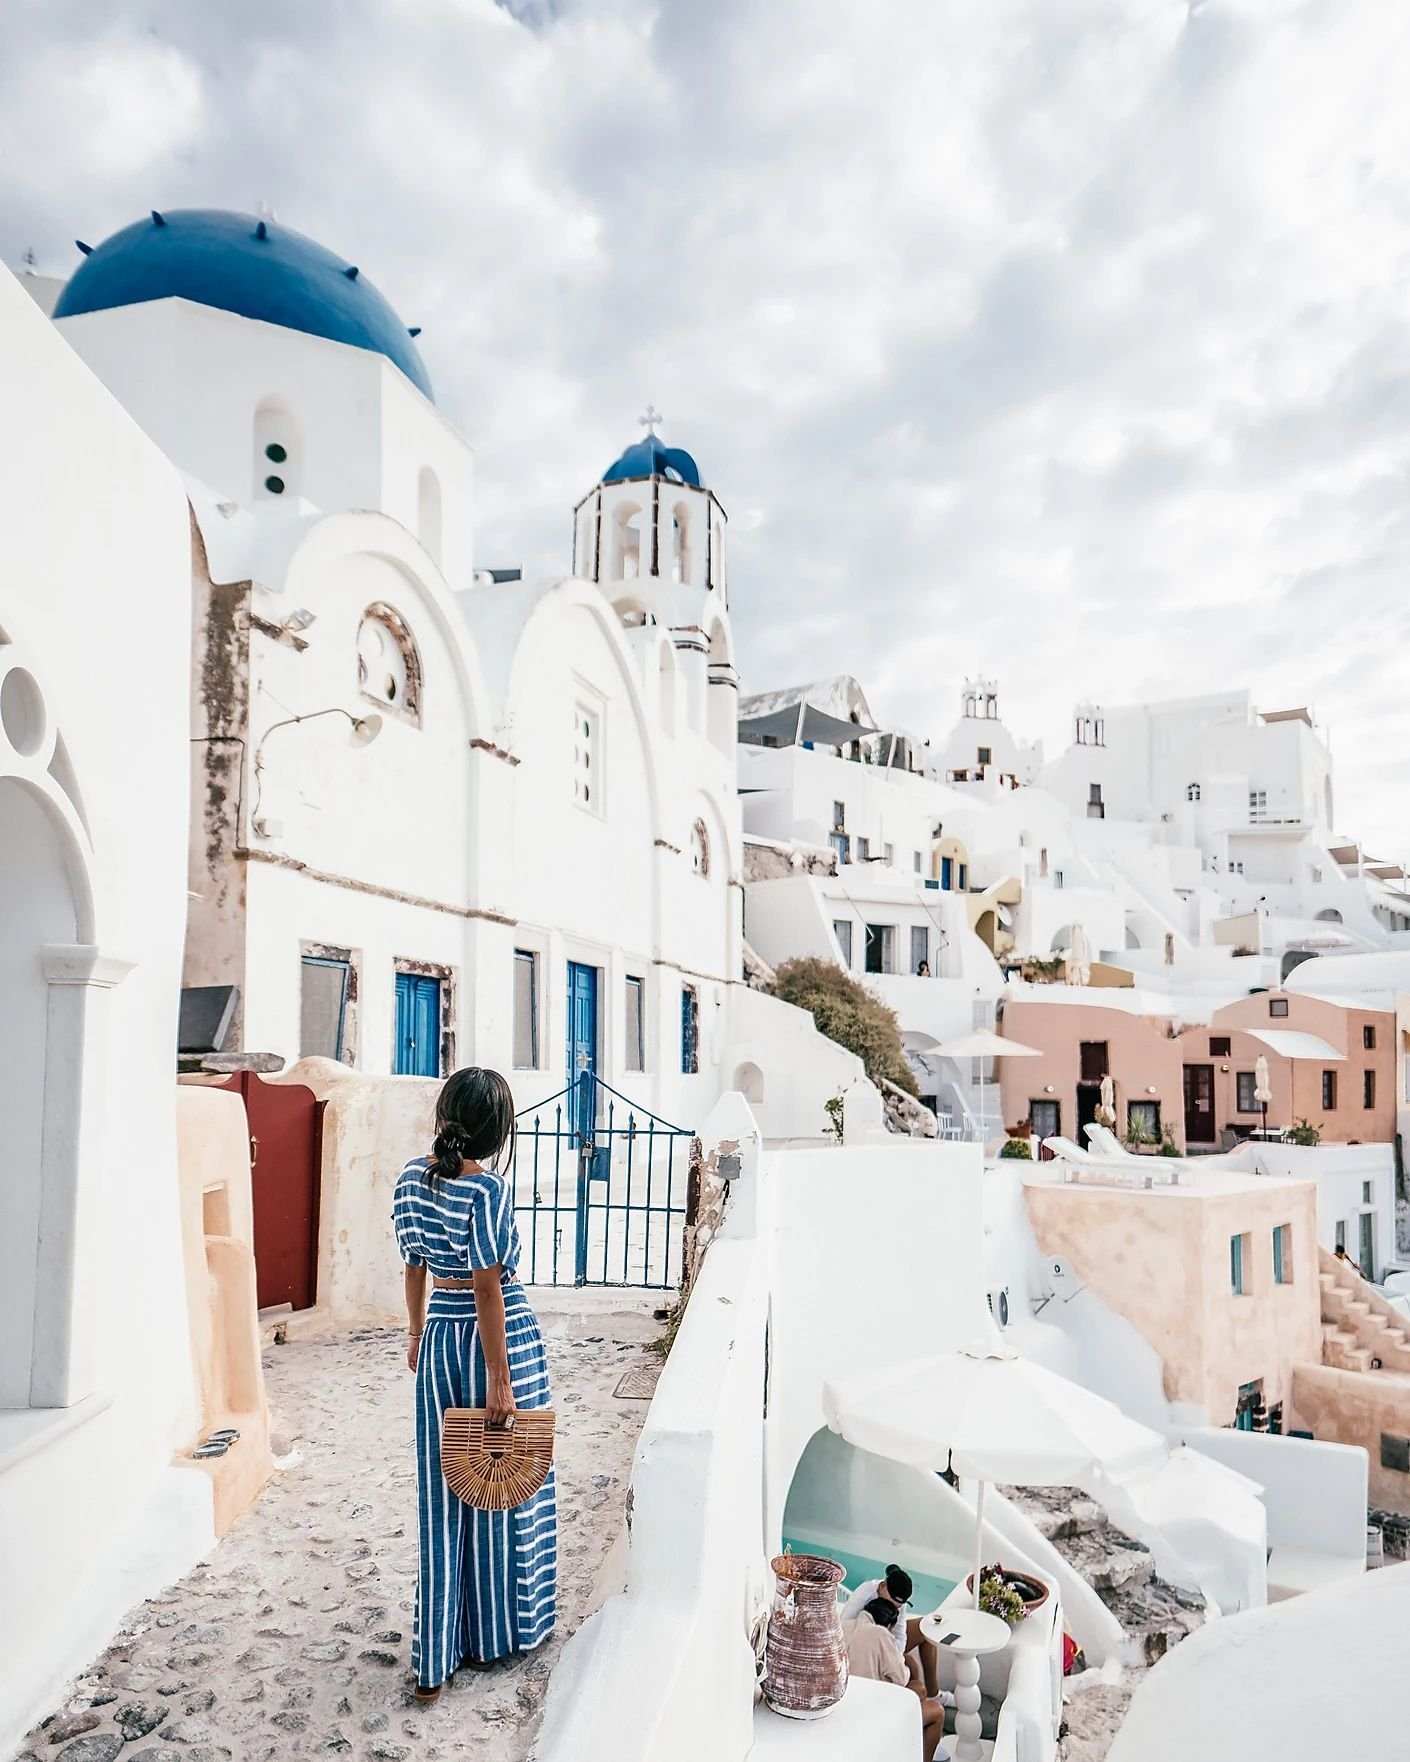 Blue Domes Of Oia Santorini Travel Guide To The Greek Islands Santorini Travel Santorini Travel Guide Greek Islands